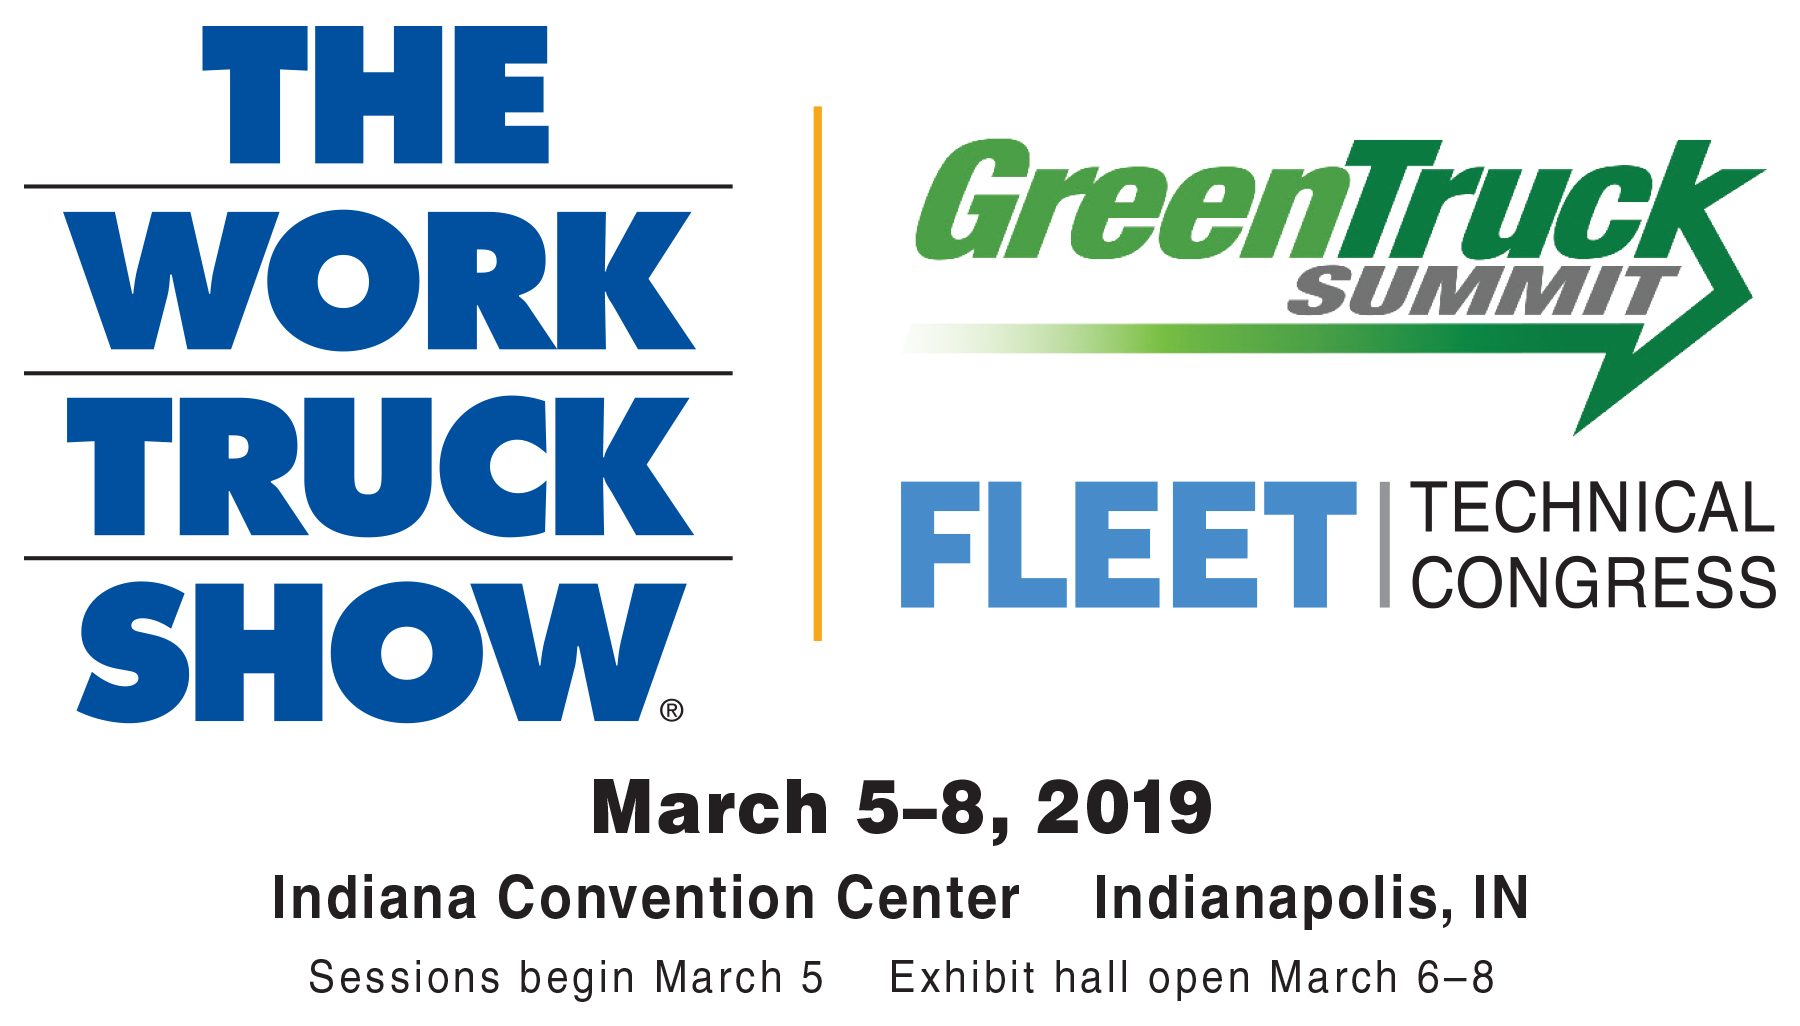 NEWS - PADOAN ALLA FIERA STATUNITENSE THE WORK TRUCK SHOW 2019